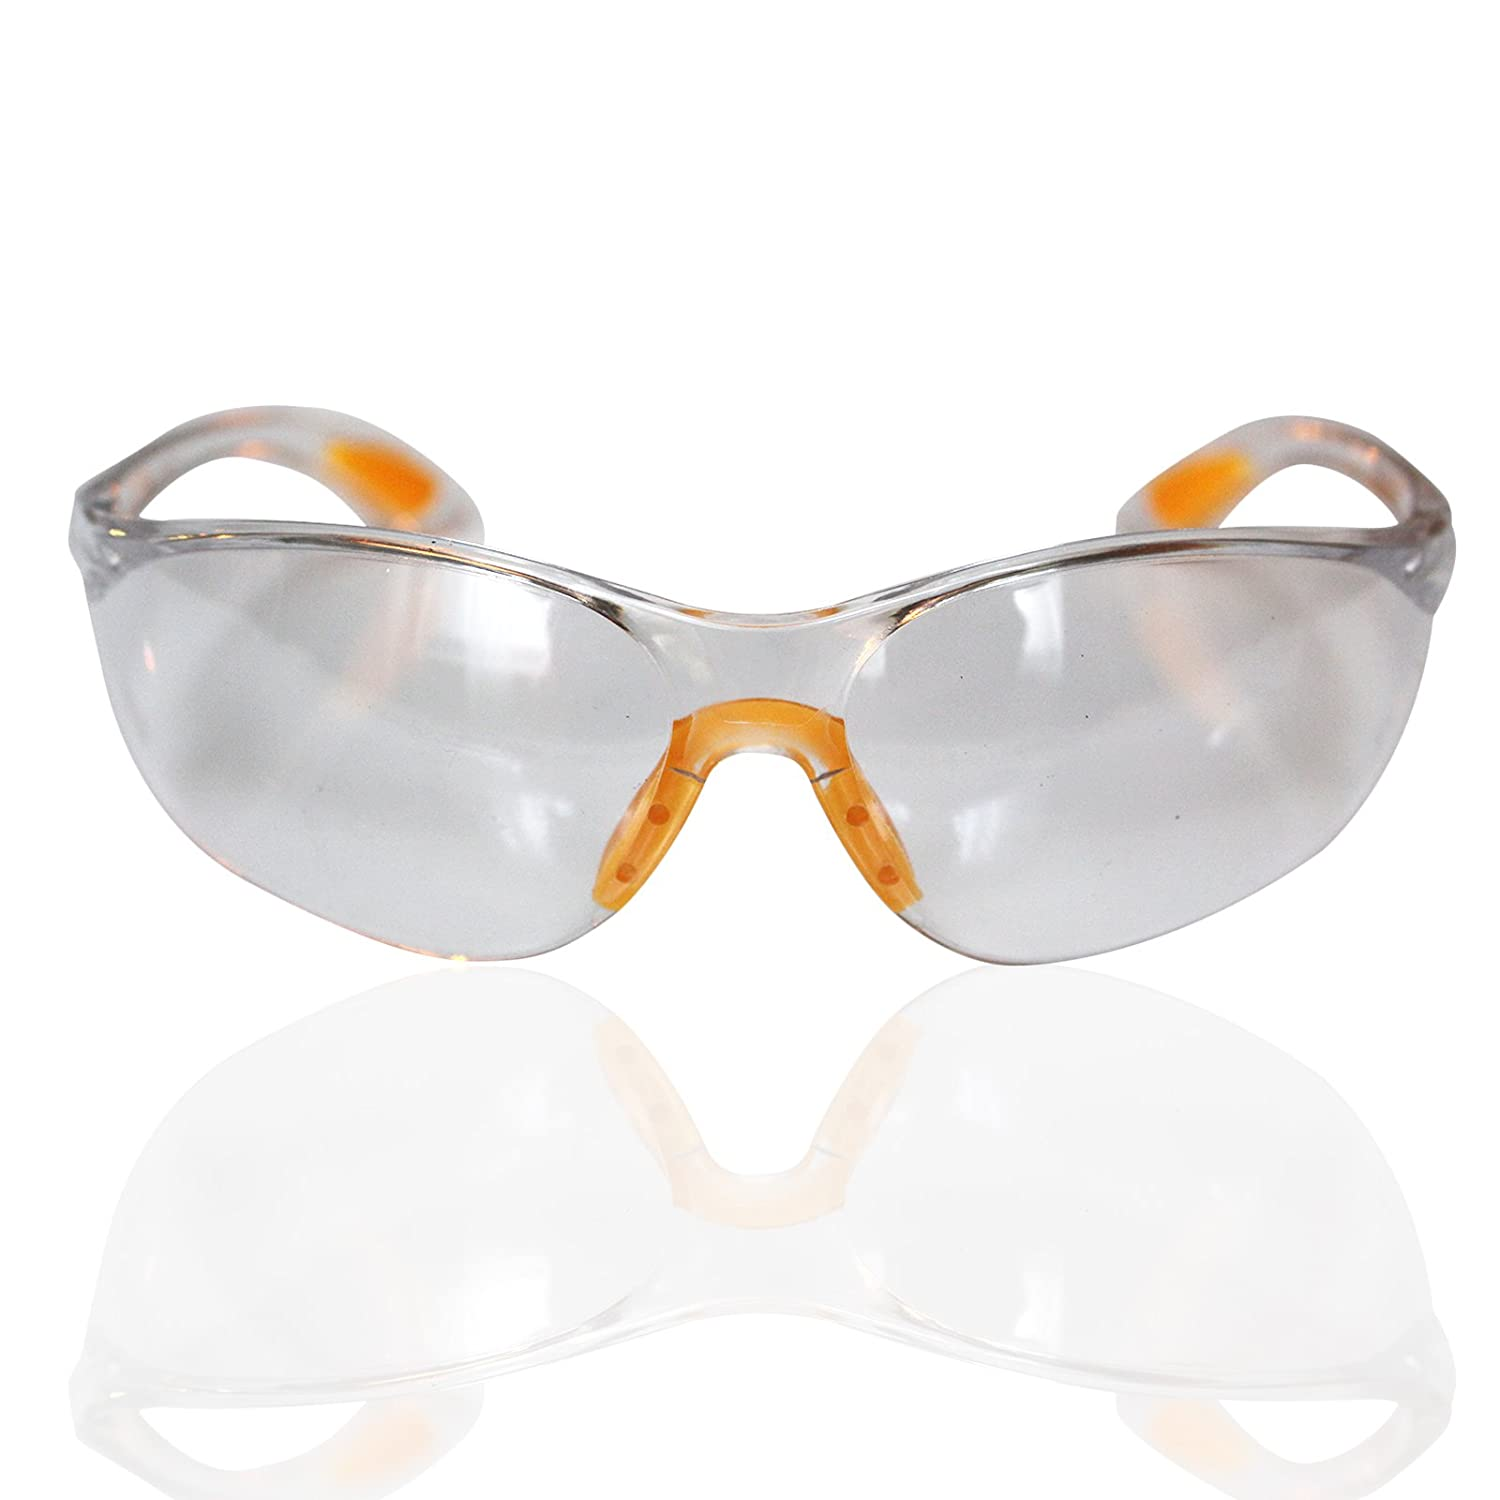 Safety Glasses 12 Piece Pack of Protective Glasses,Safety Goggles Eyewear Eyeglasses for Eye Protection with Clear Plastic Lenses and Featuring Rubber Nose And Ear Grips for a Comfortable Fit